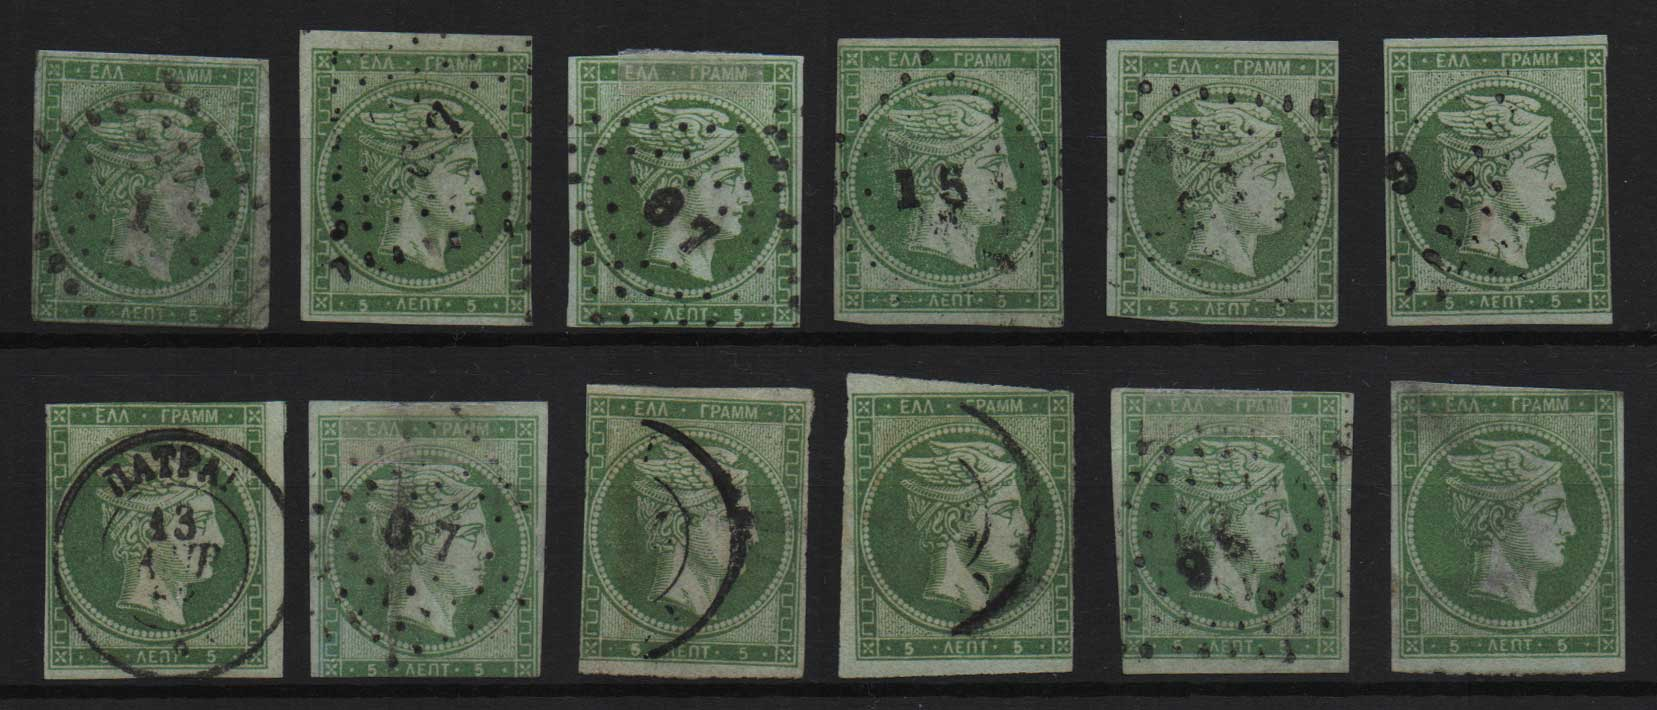 Lot 3 - -  LARGE HERMES HEAD large hermes head -  Athens Auctions Public Auction 67 General Stamp Sale